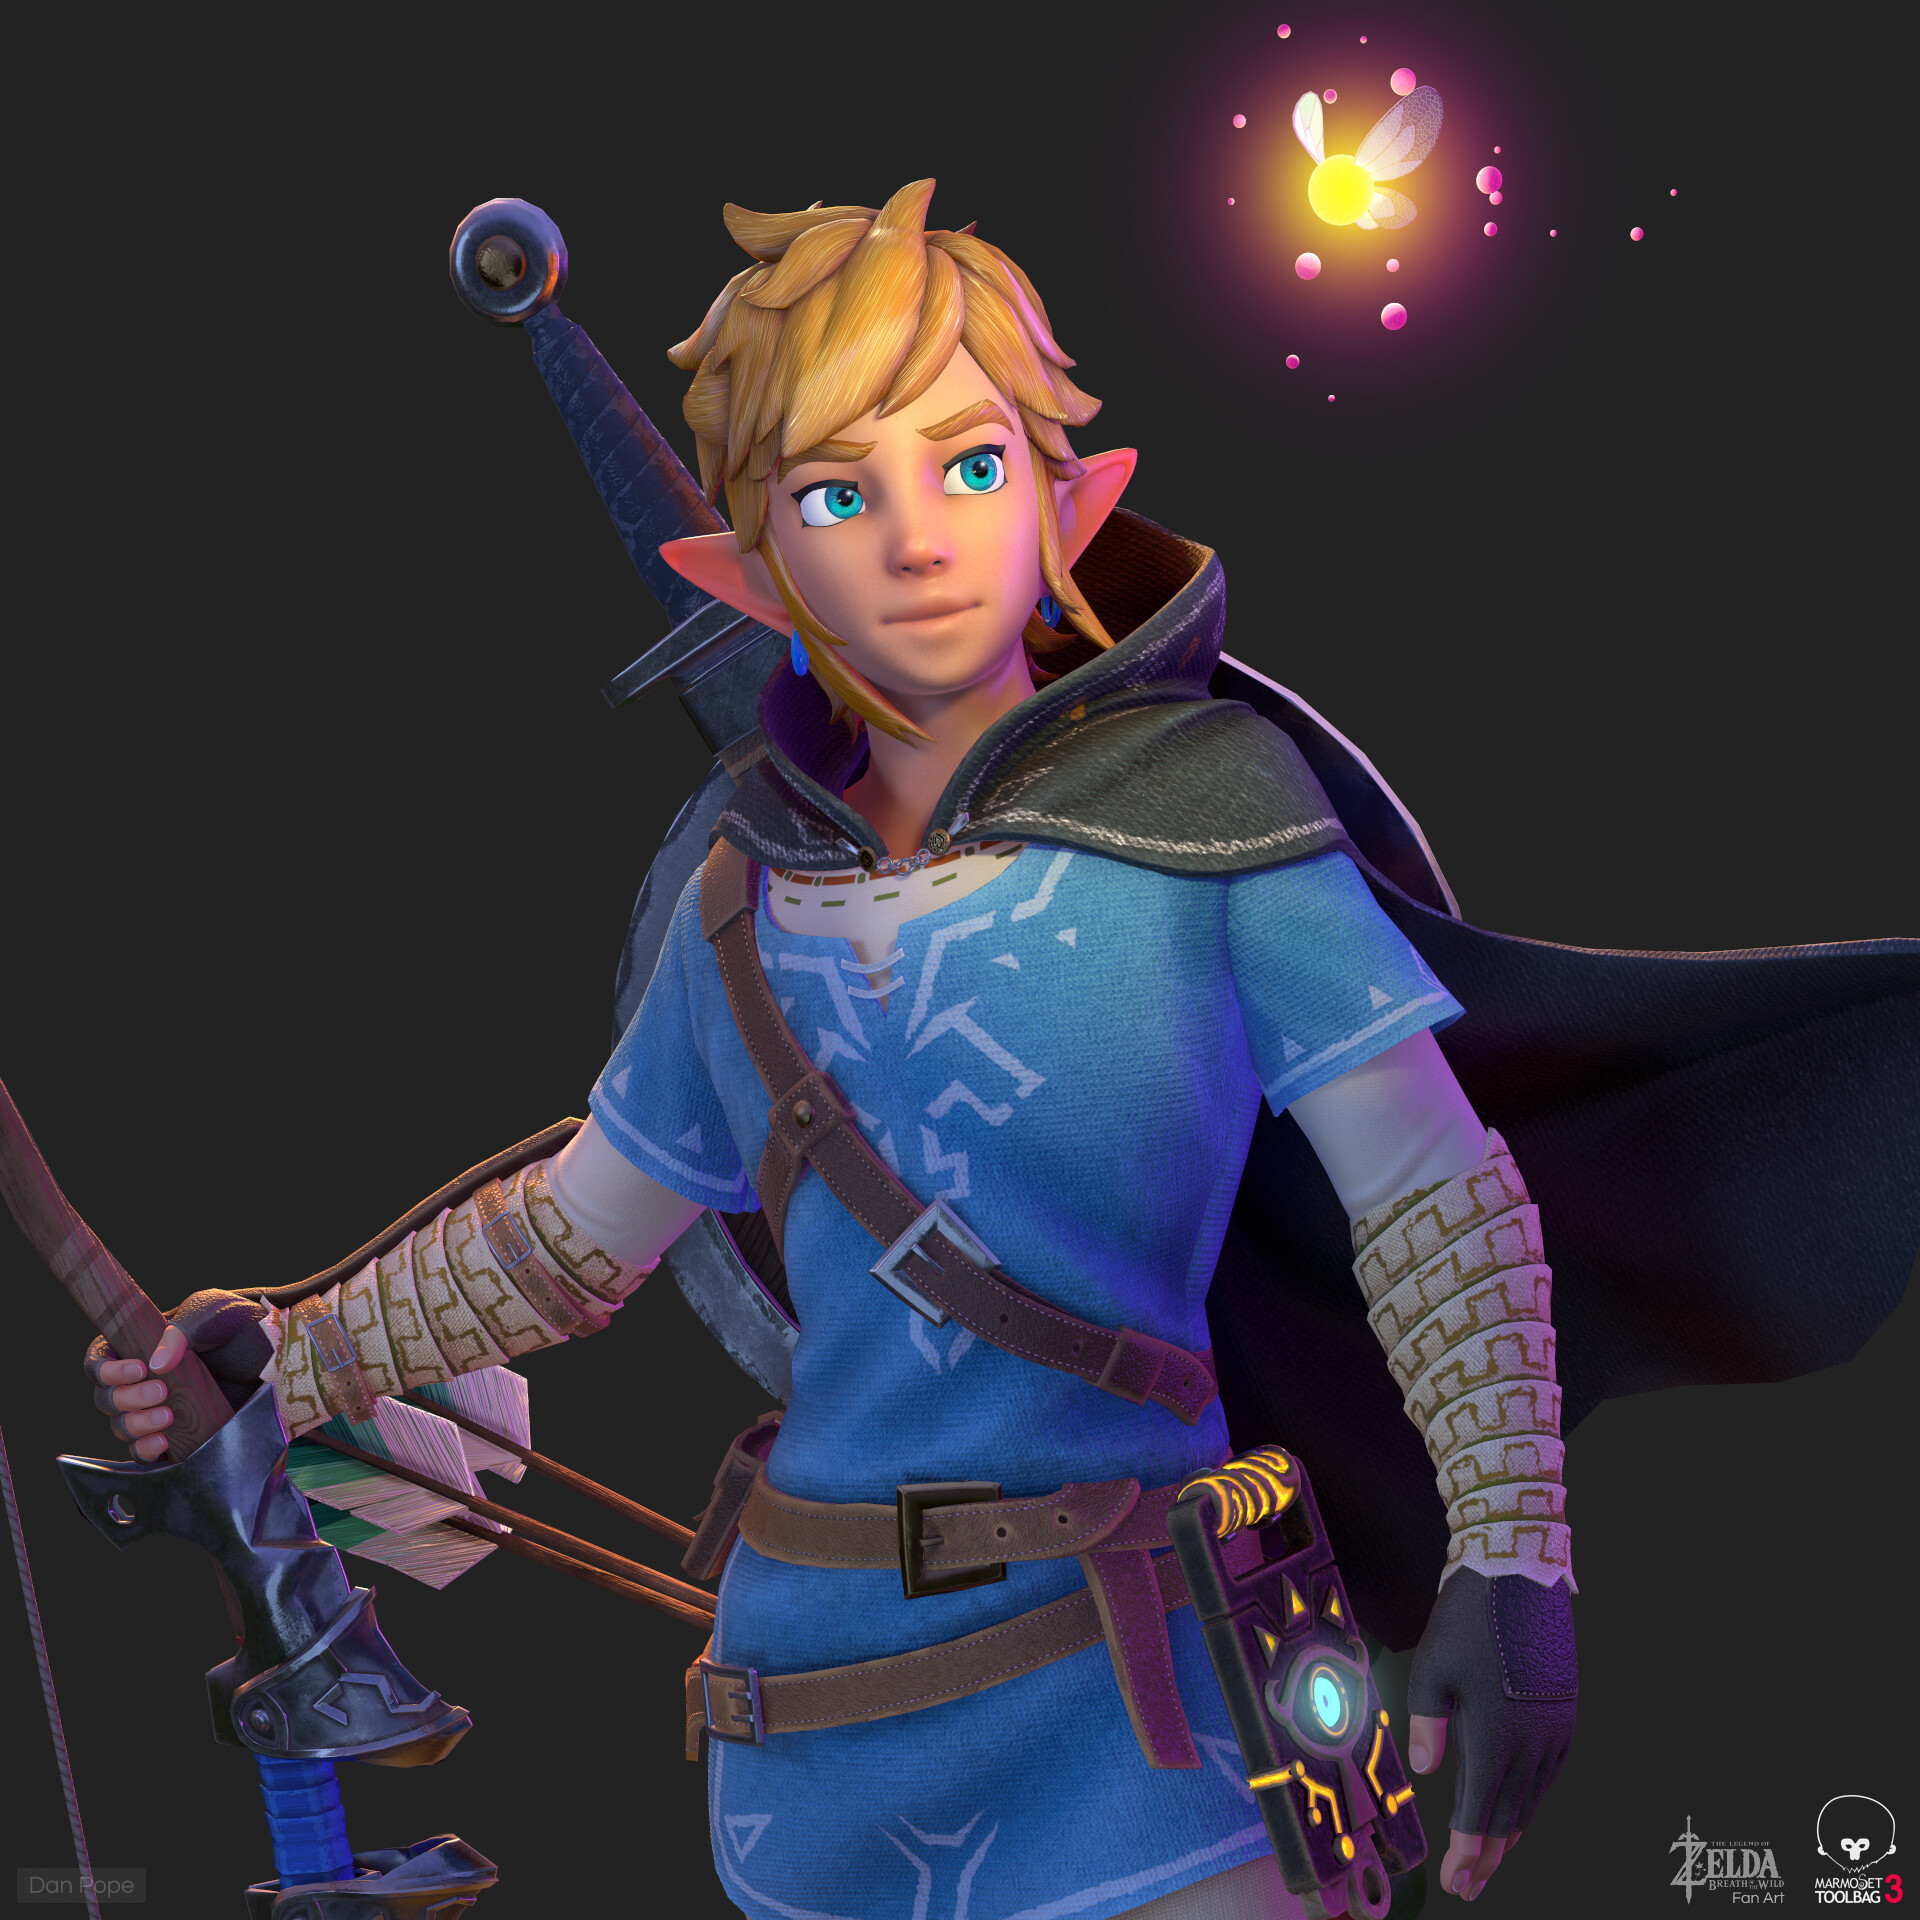 Artstation Link The Legend Of Zelda Breath Of The Wild